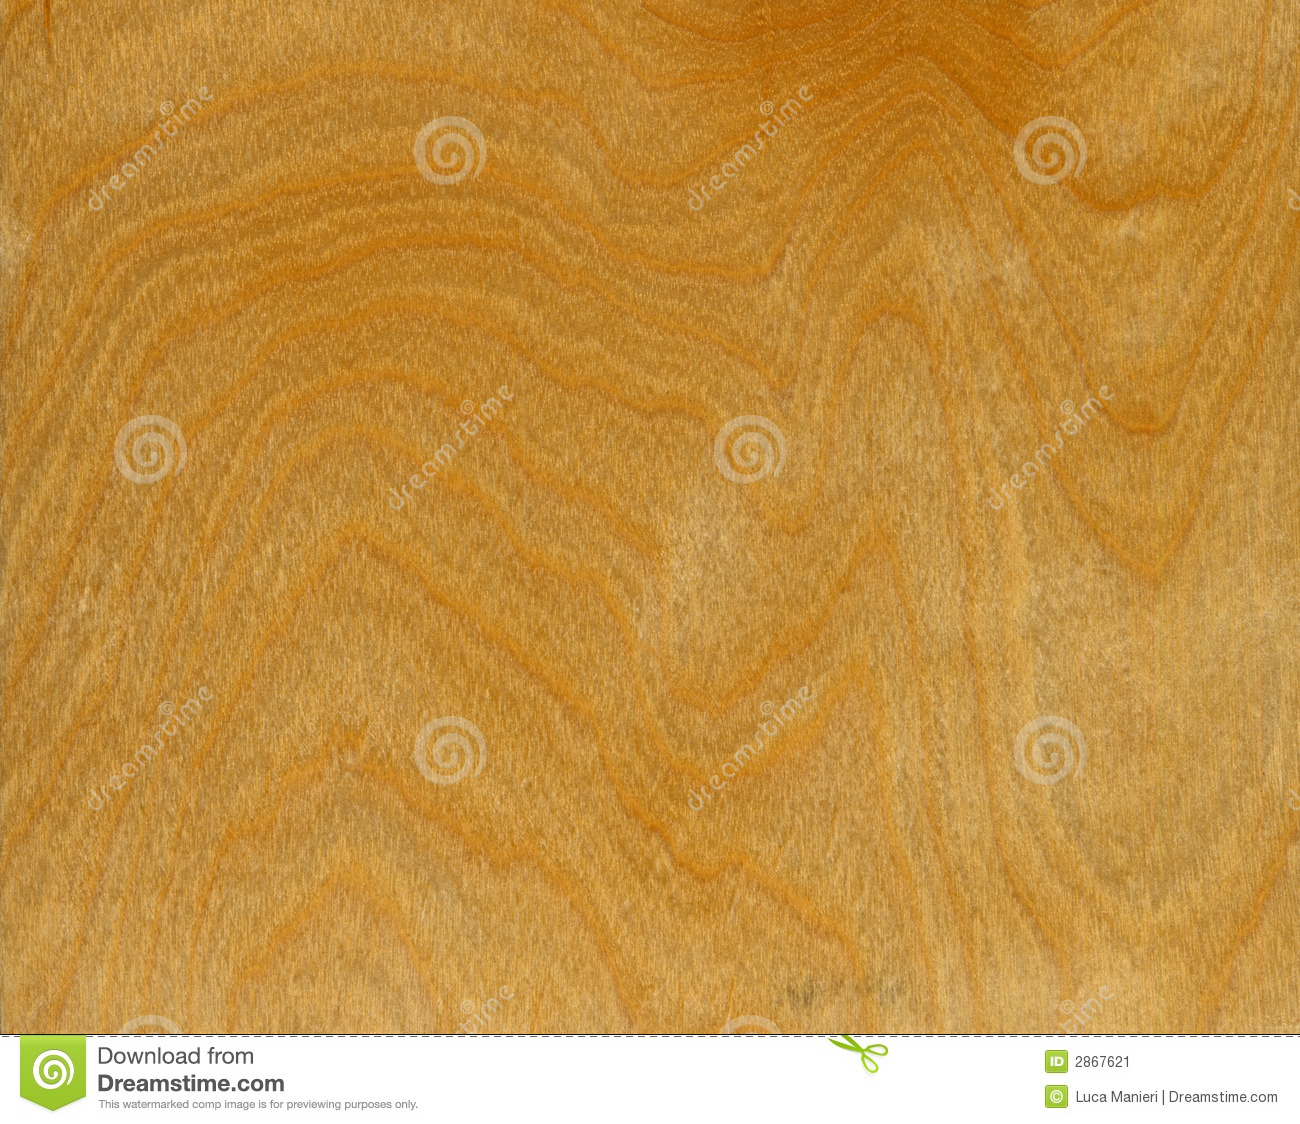 Birch Wood Background Stock Image - Image: 2867621